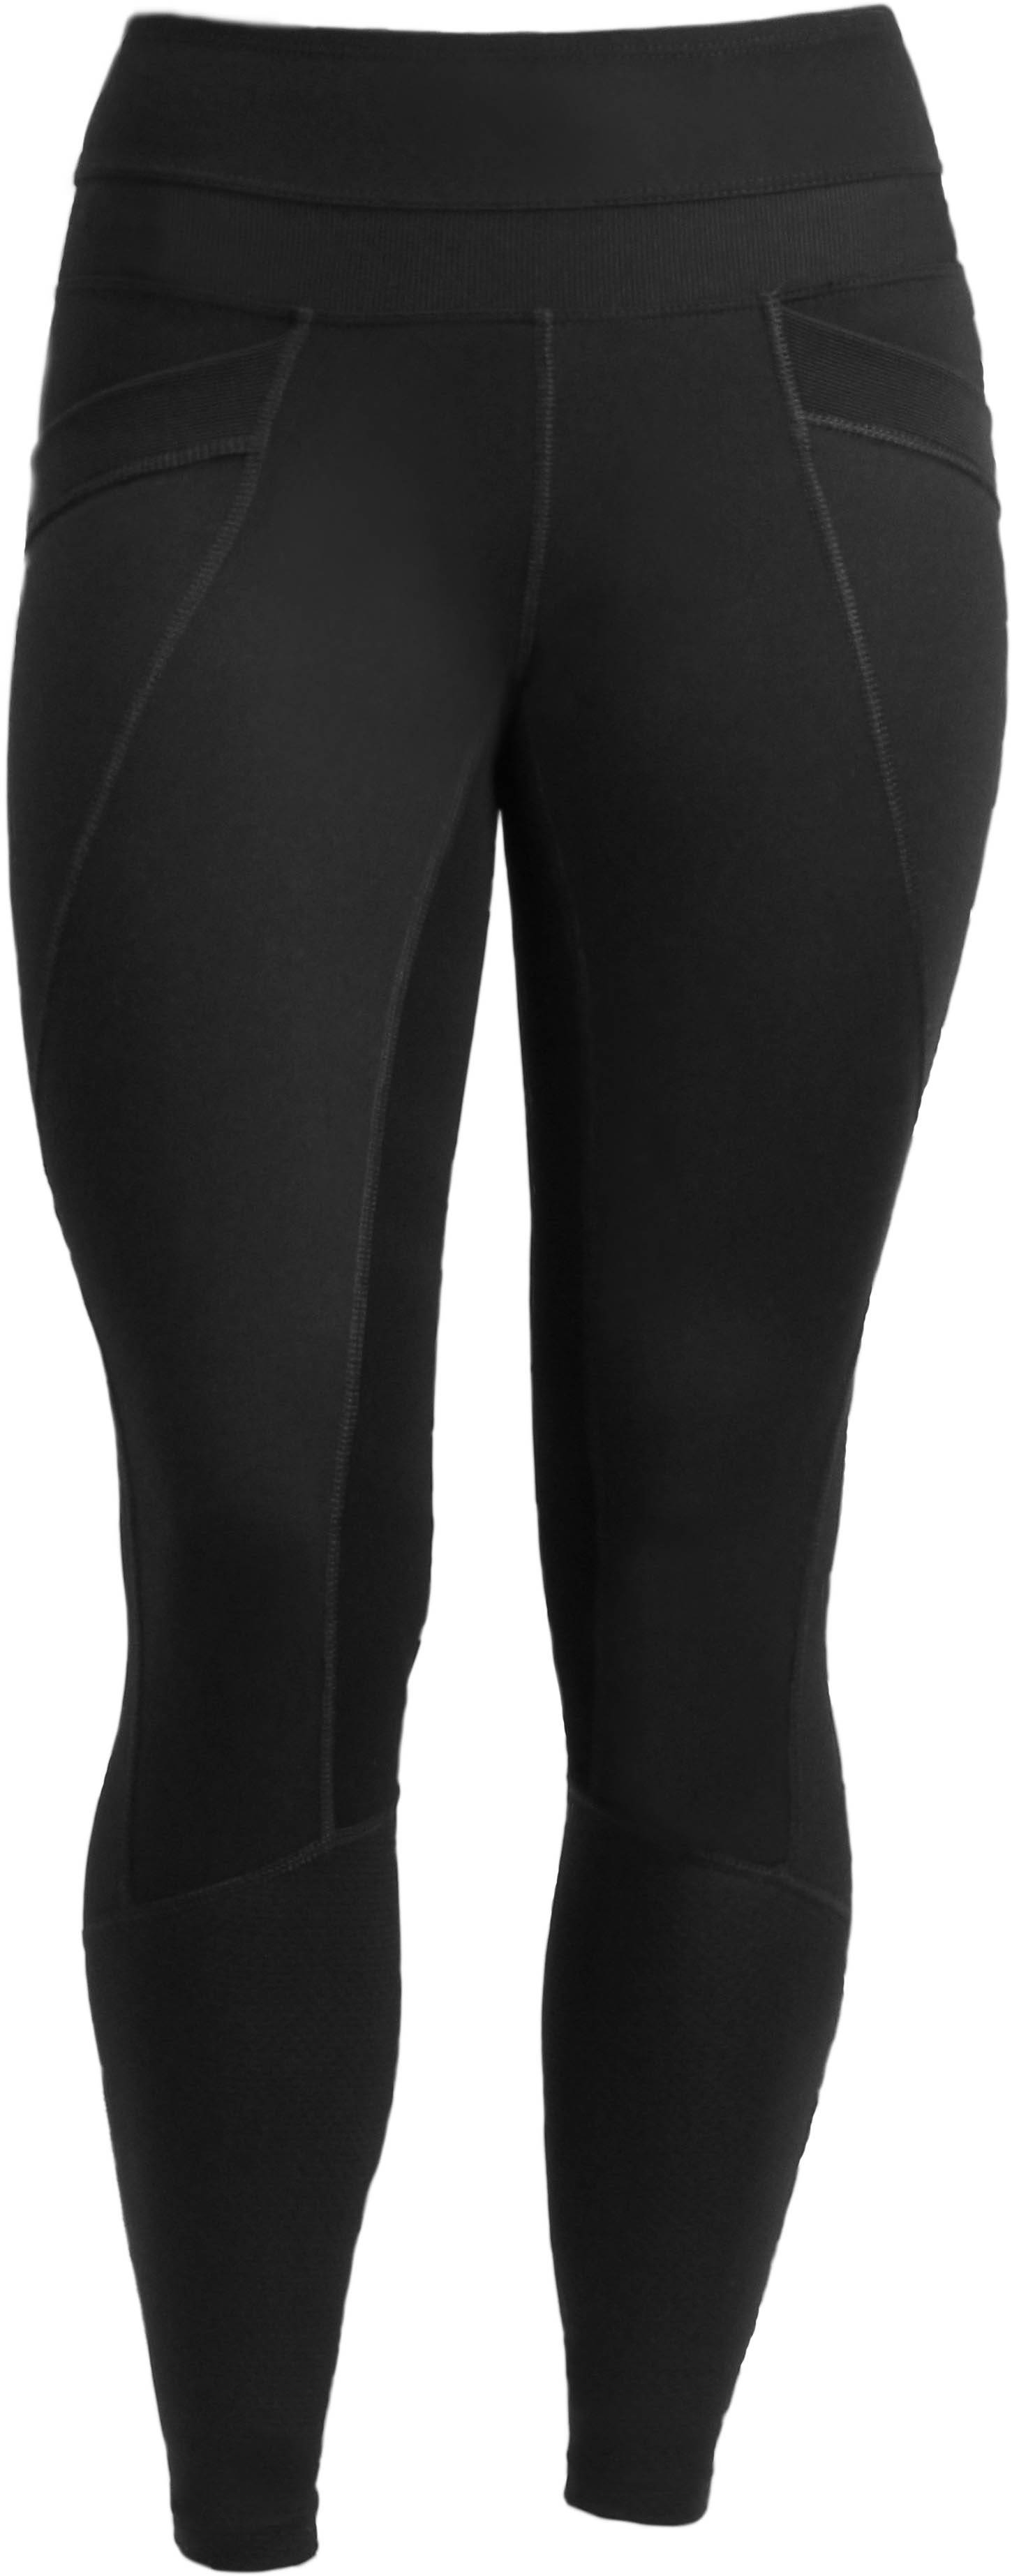 Irideon Ladies Synergy Full Seat Tights